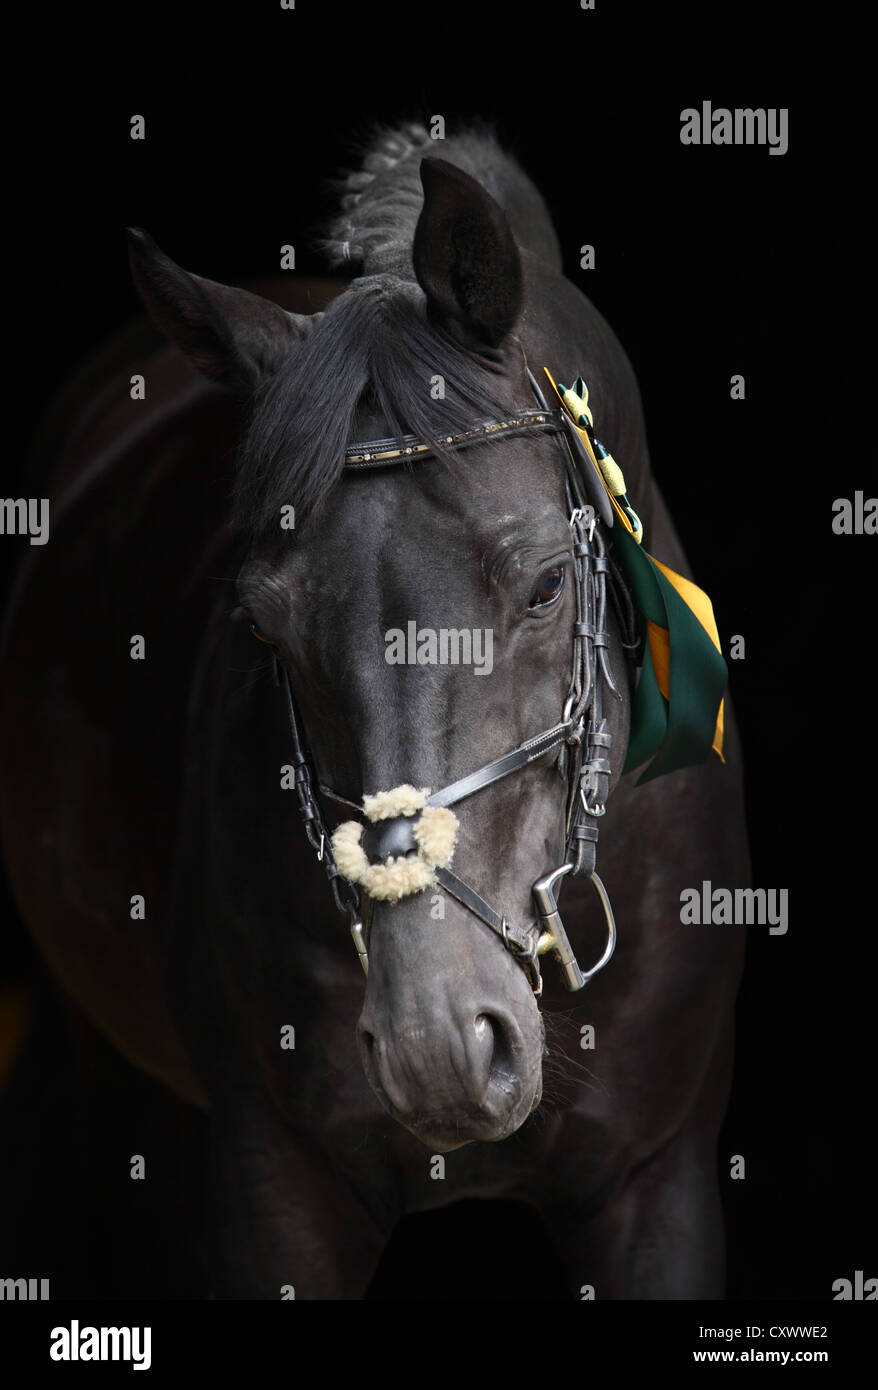 Portrait of a black thoroughbred horse - Stock Image